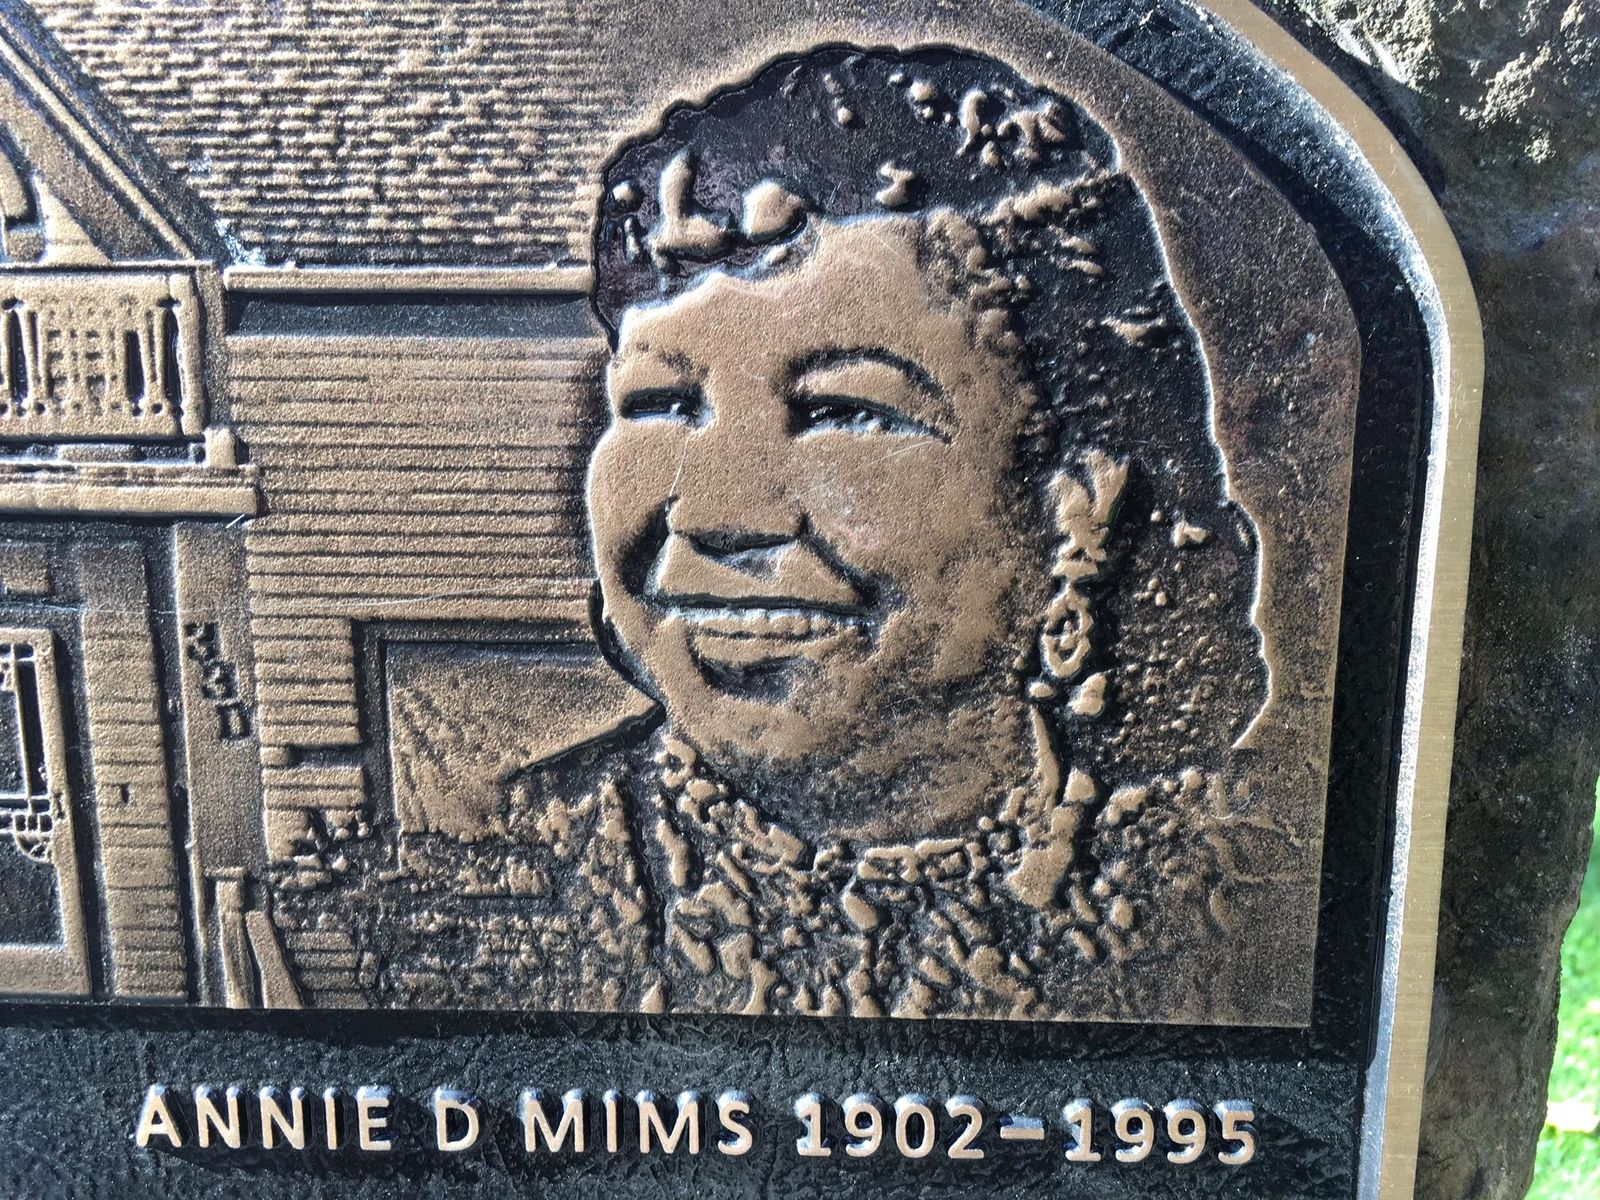 "<p>Annie Mims was one of the first African American property owners in Eugene. ""Annie Mims and her husband C.B. Mims were the first African American family to own a home in Eugene at a time when African American's were excluded from living in the city limits and redlining was rampant,"" according to the nomination. (SBG)</p>"